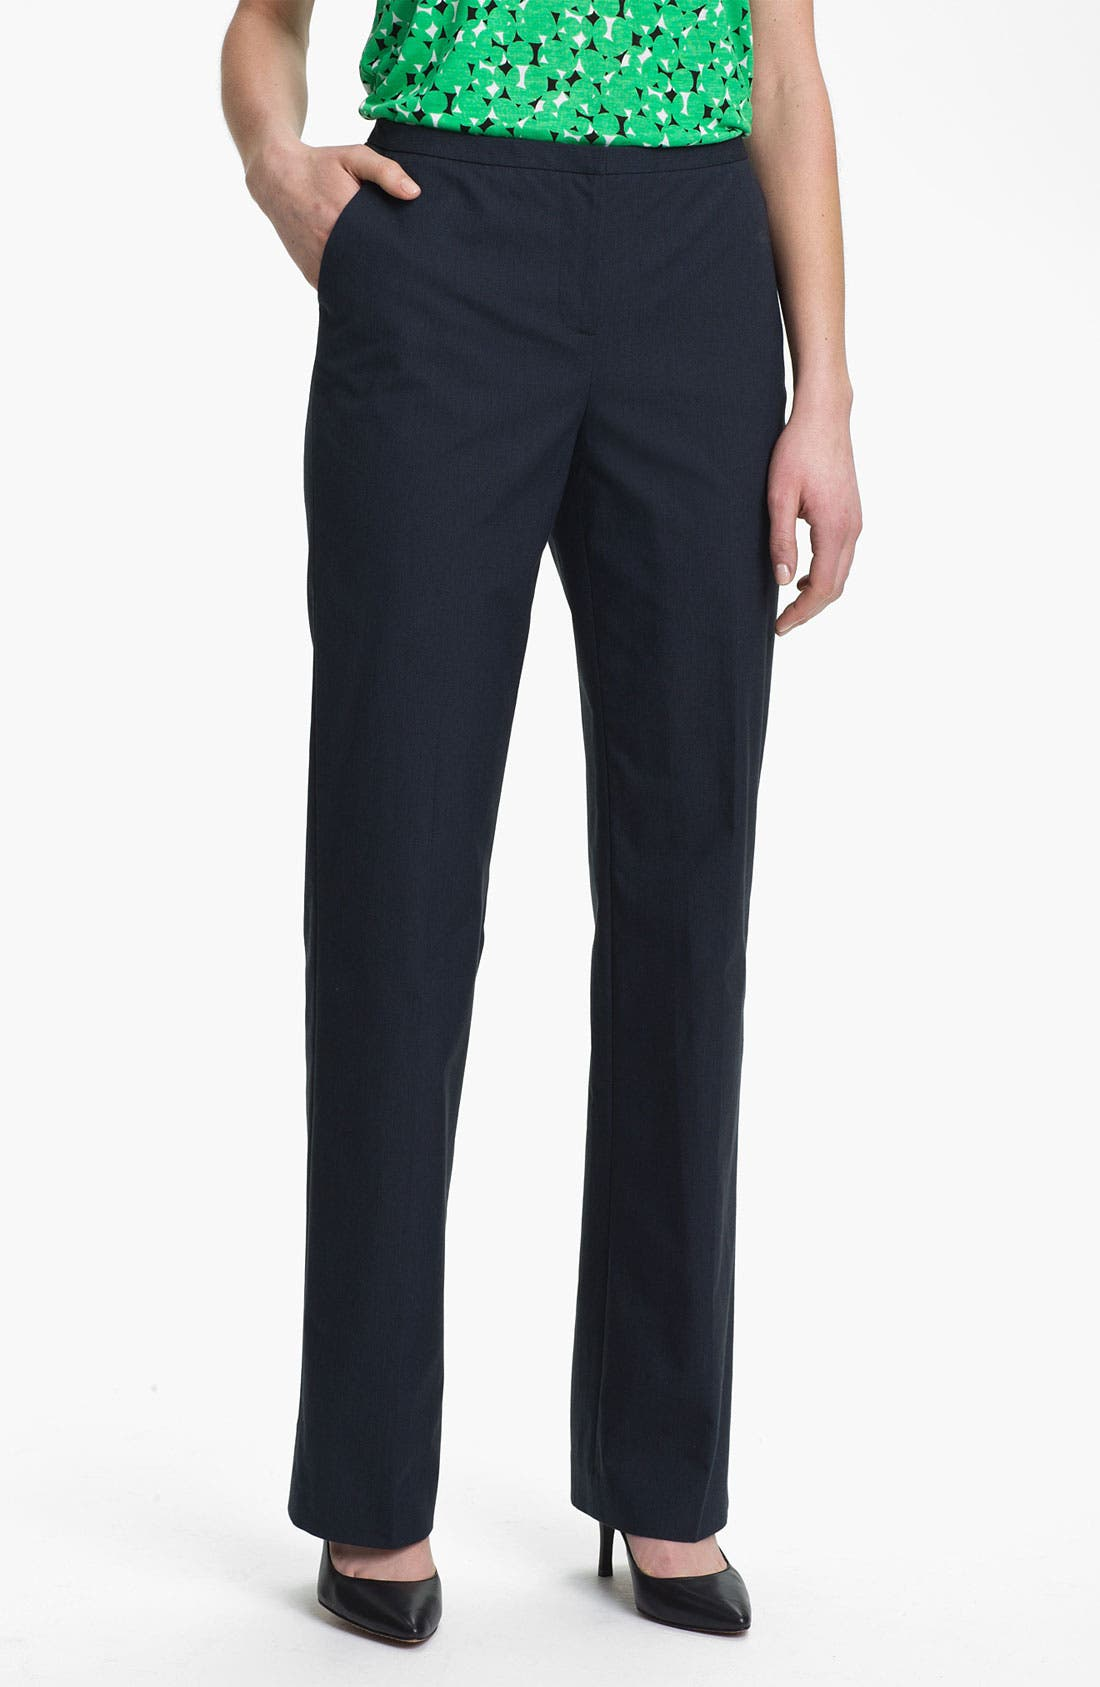 Main Image - Halogen 'Taylor' Pinstripe Curvy Fit Pants